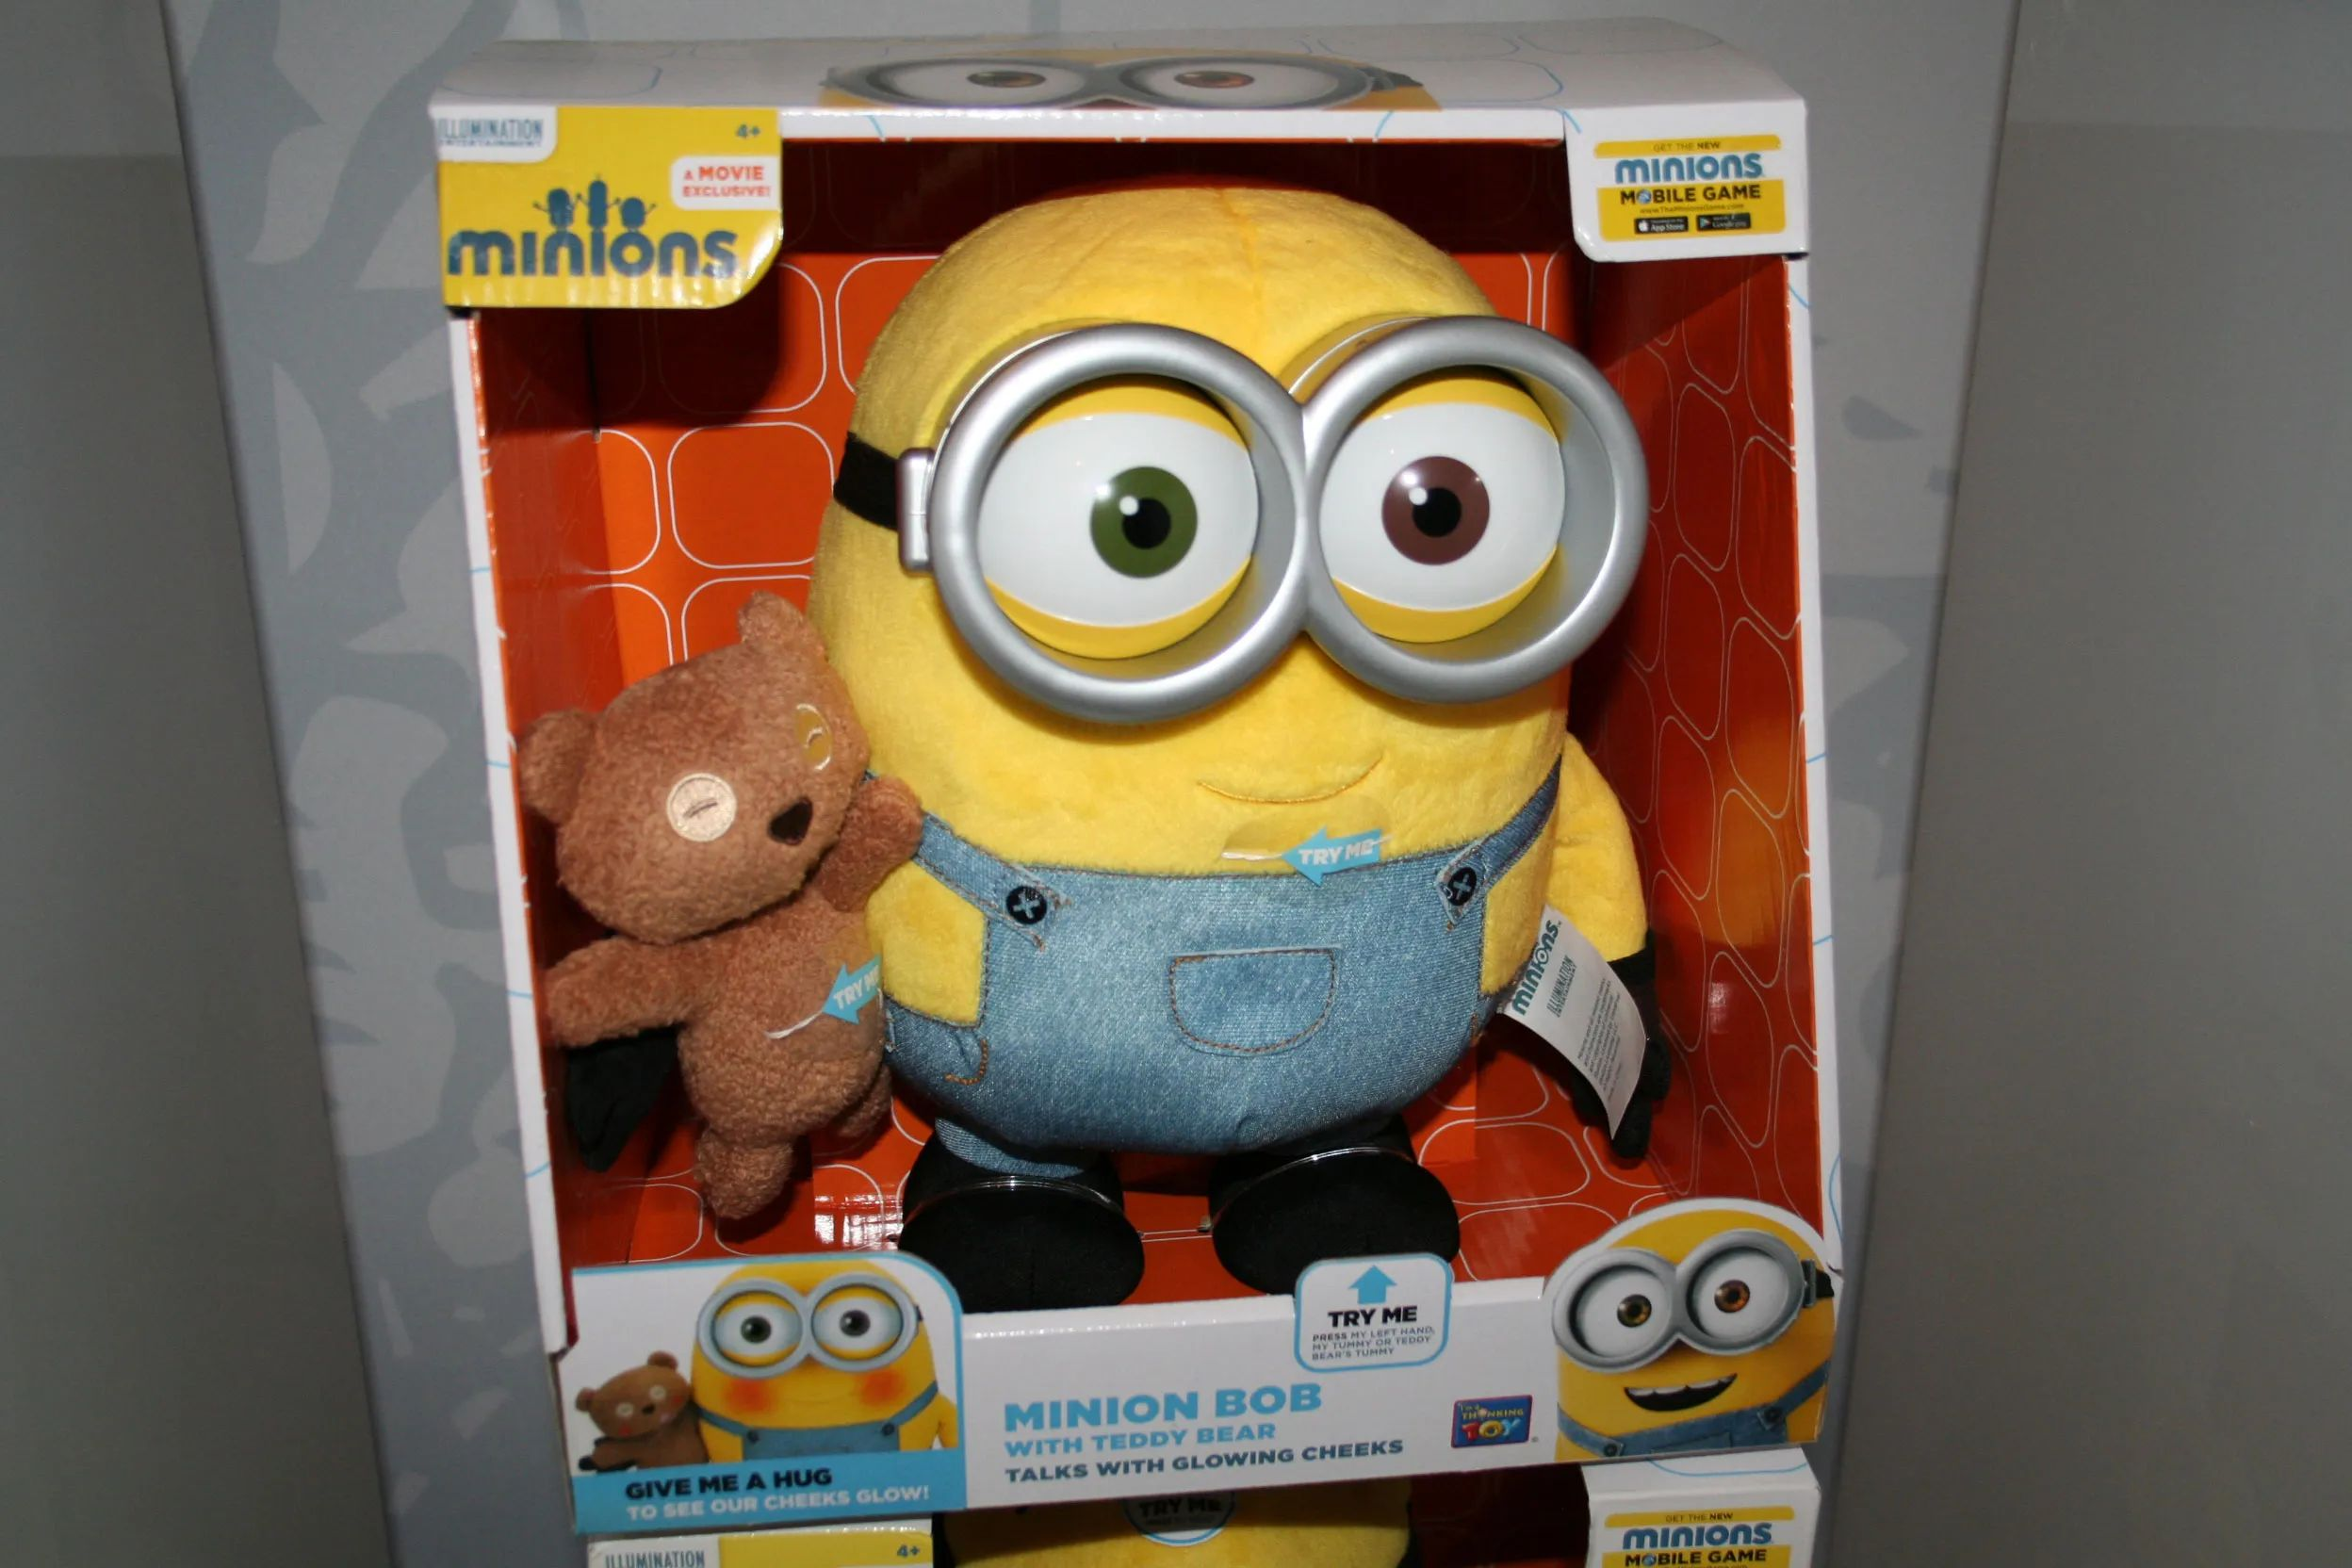 Hol es bob the minion images all about minion 747 x 498 png 747 x - Hol Es Bob The Minion Images All About Minion 747 X 498 Png 747 X Download